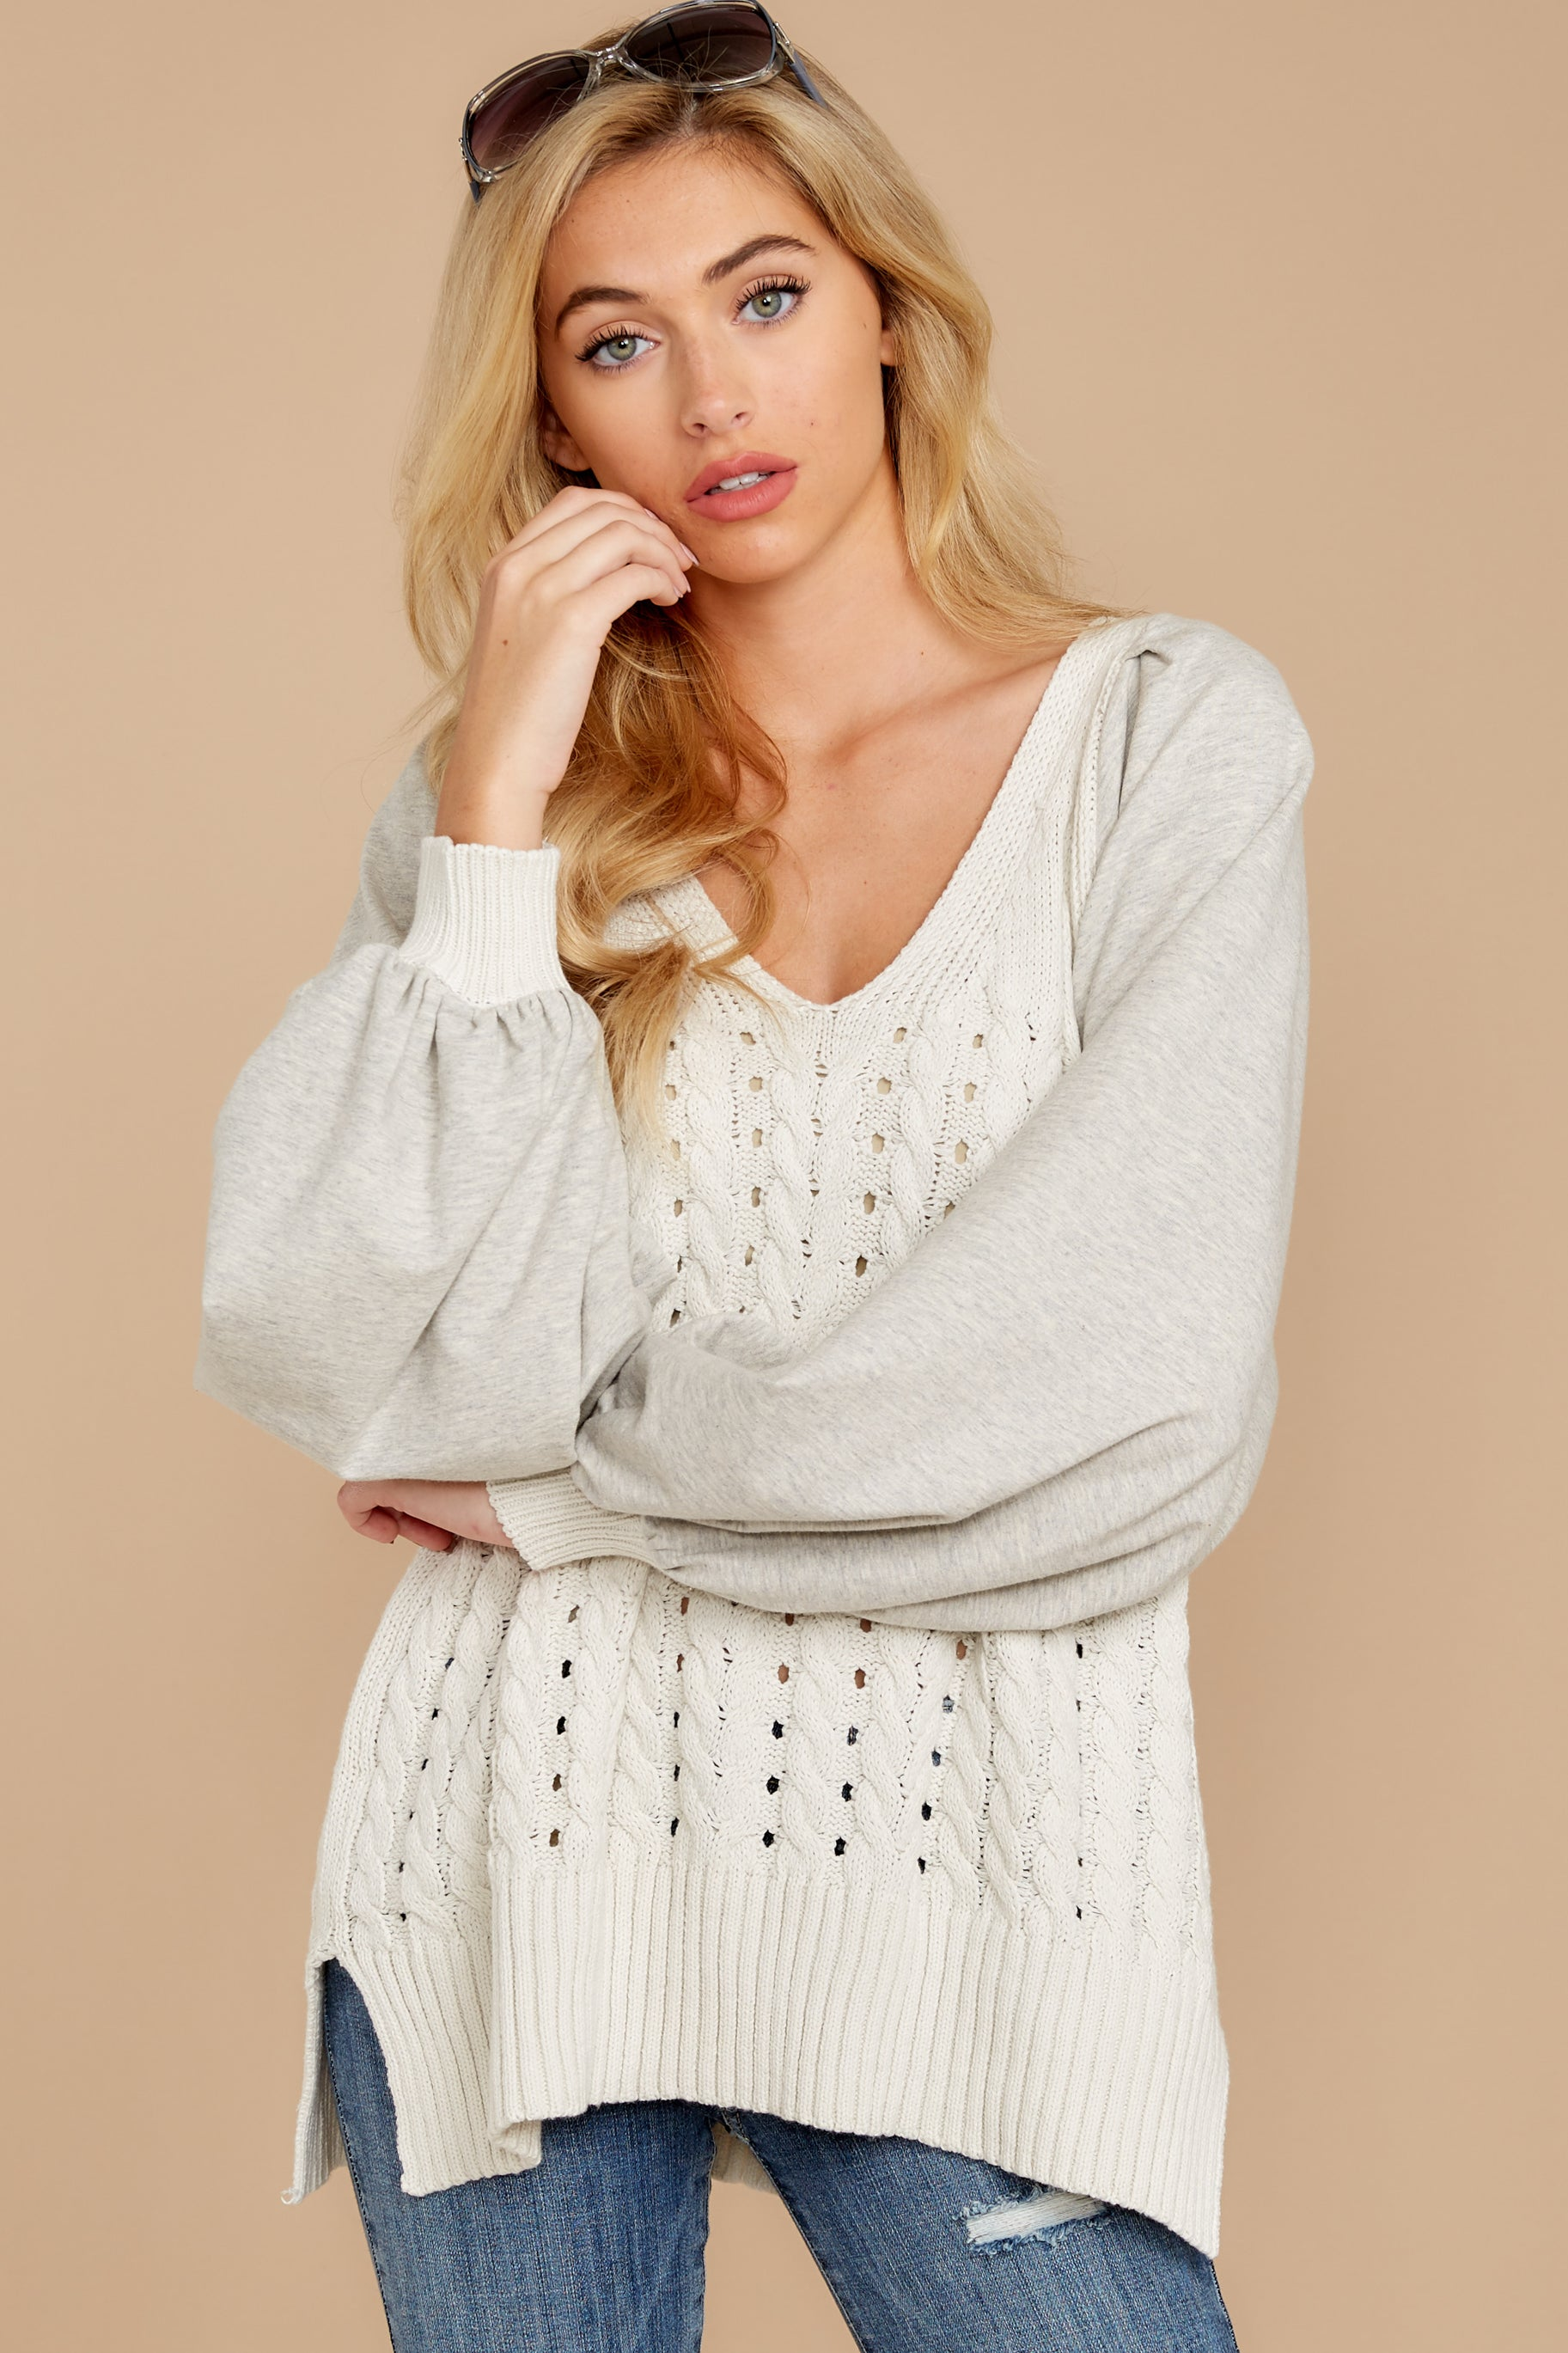 1867 All I Want Light Grey Sweater at reddress.com